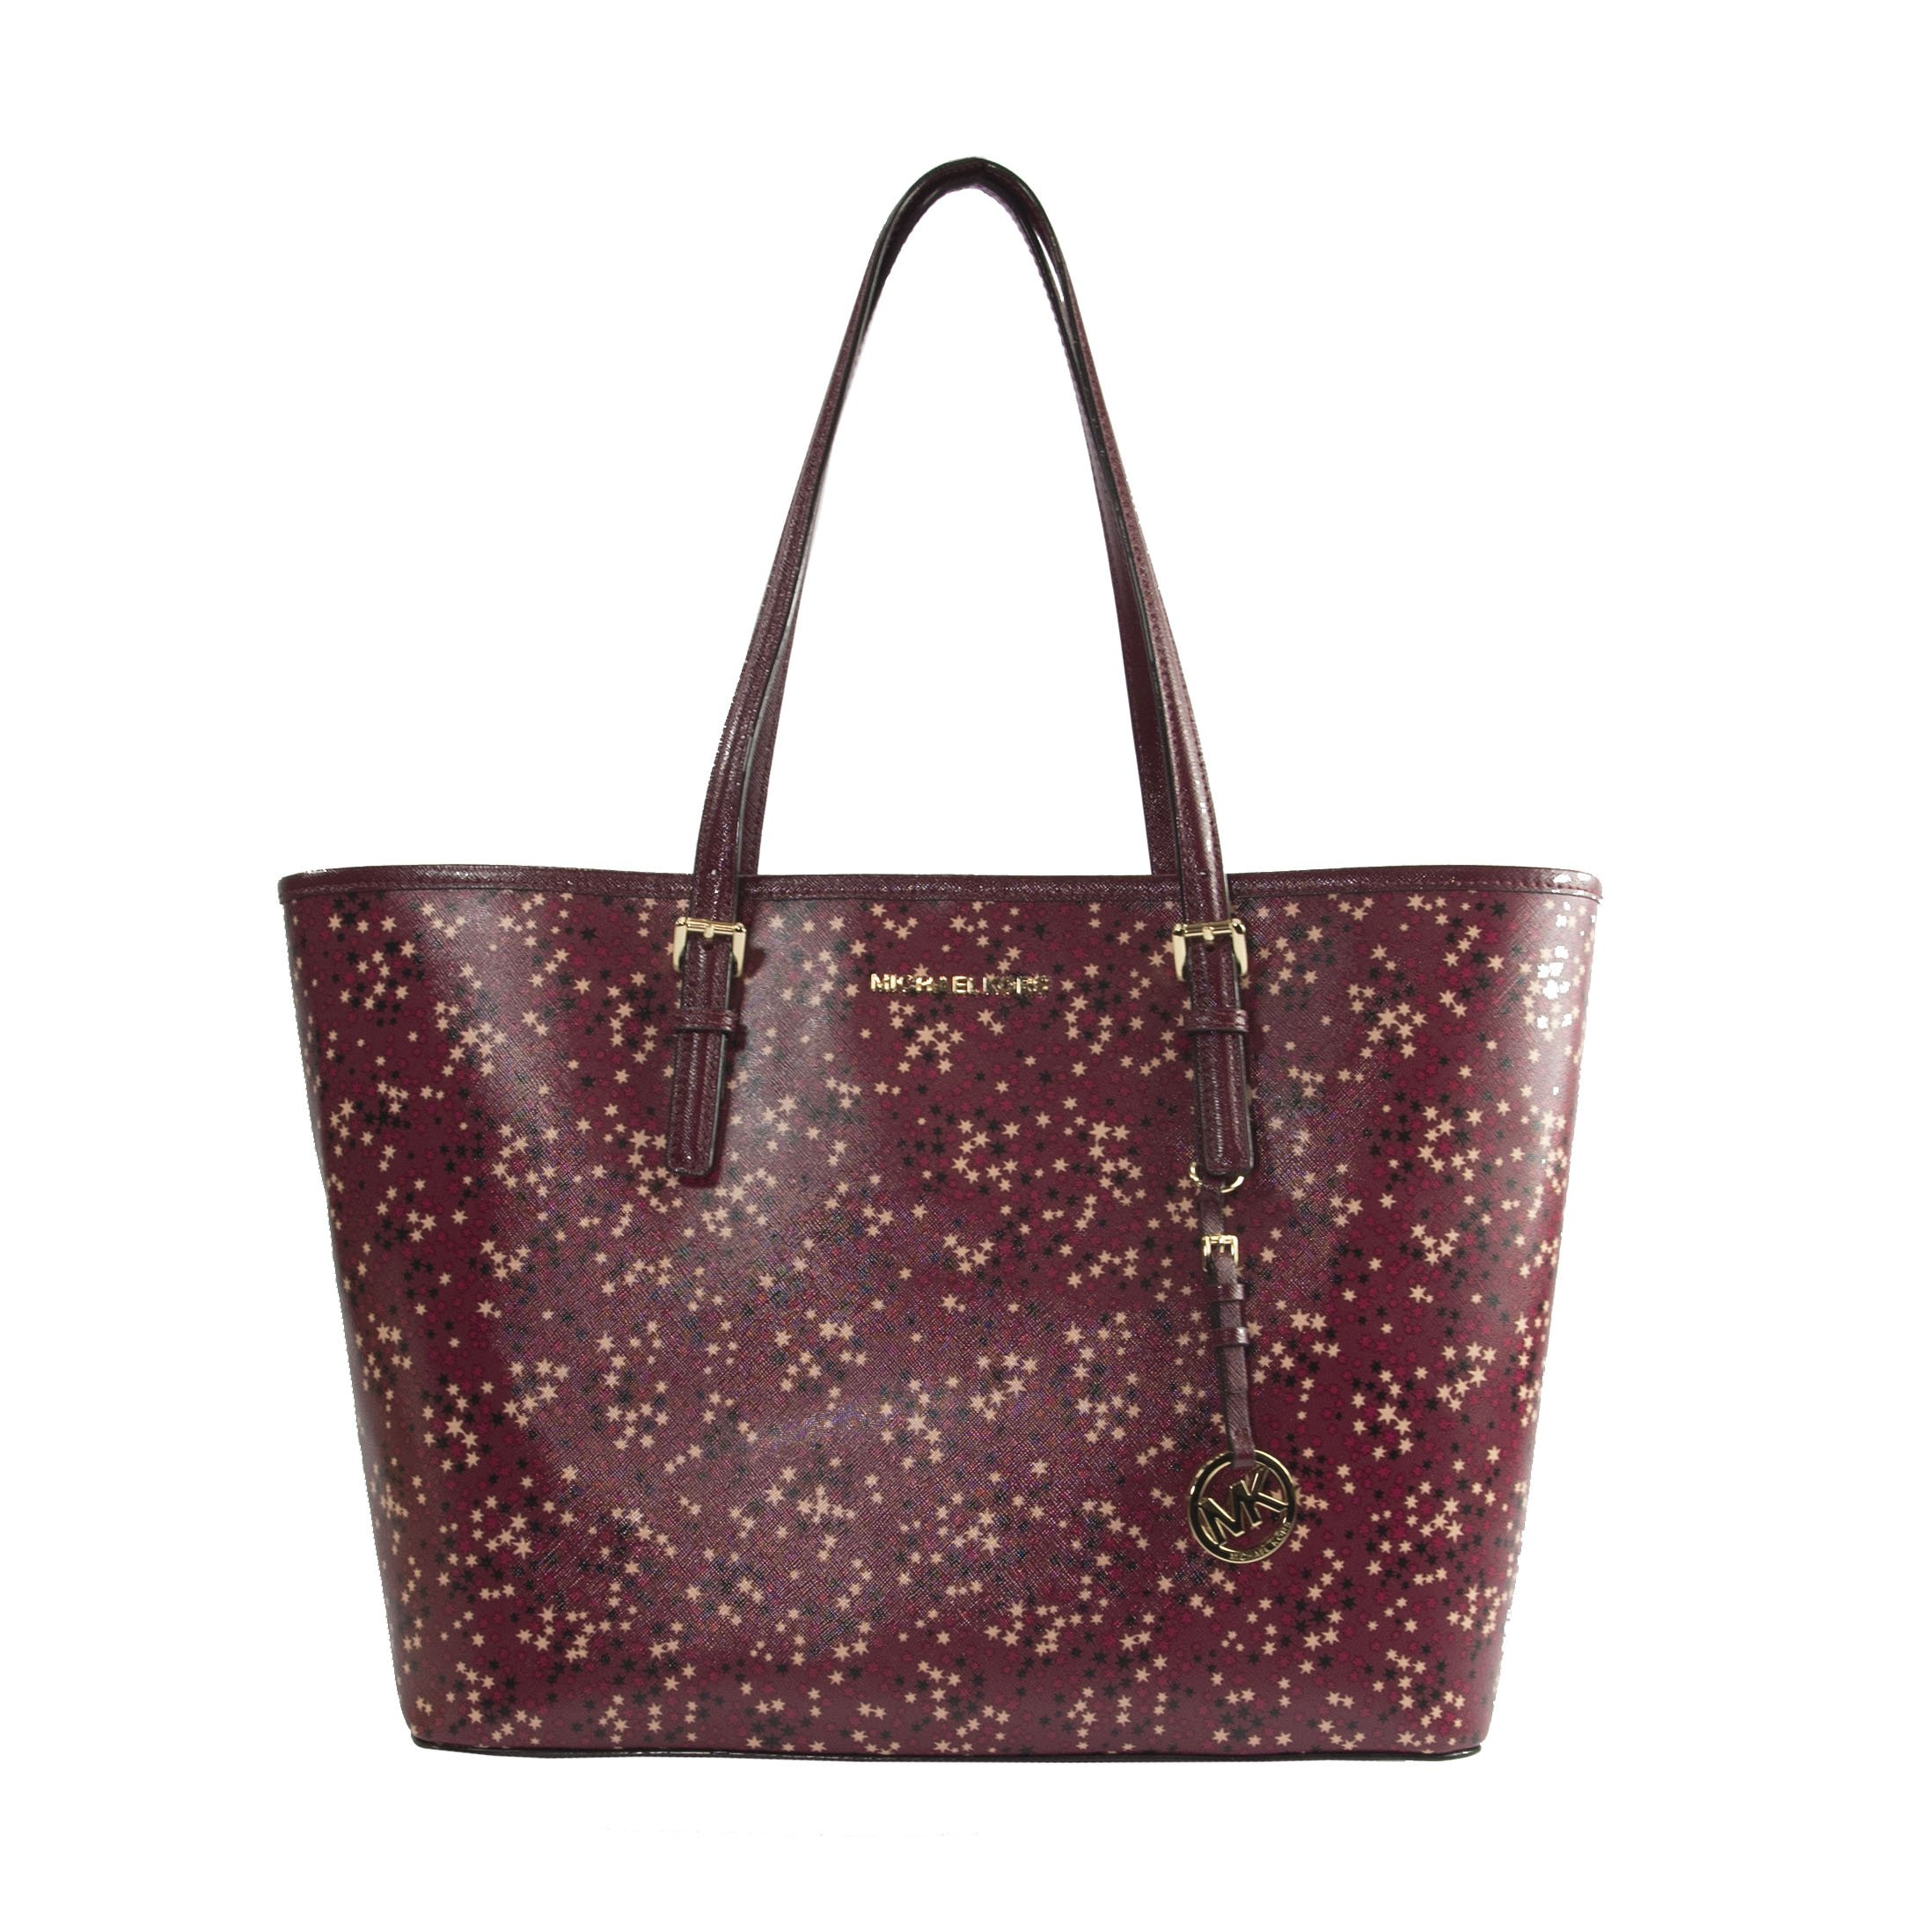 Michael Kors Illustrations Mulberry Stars Limited Edition Large Carryall Tote Bag